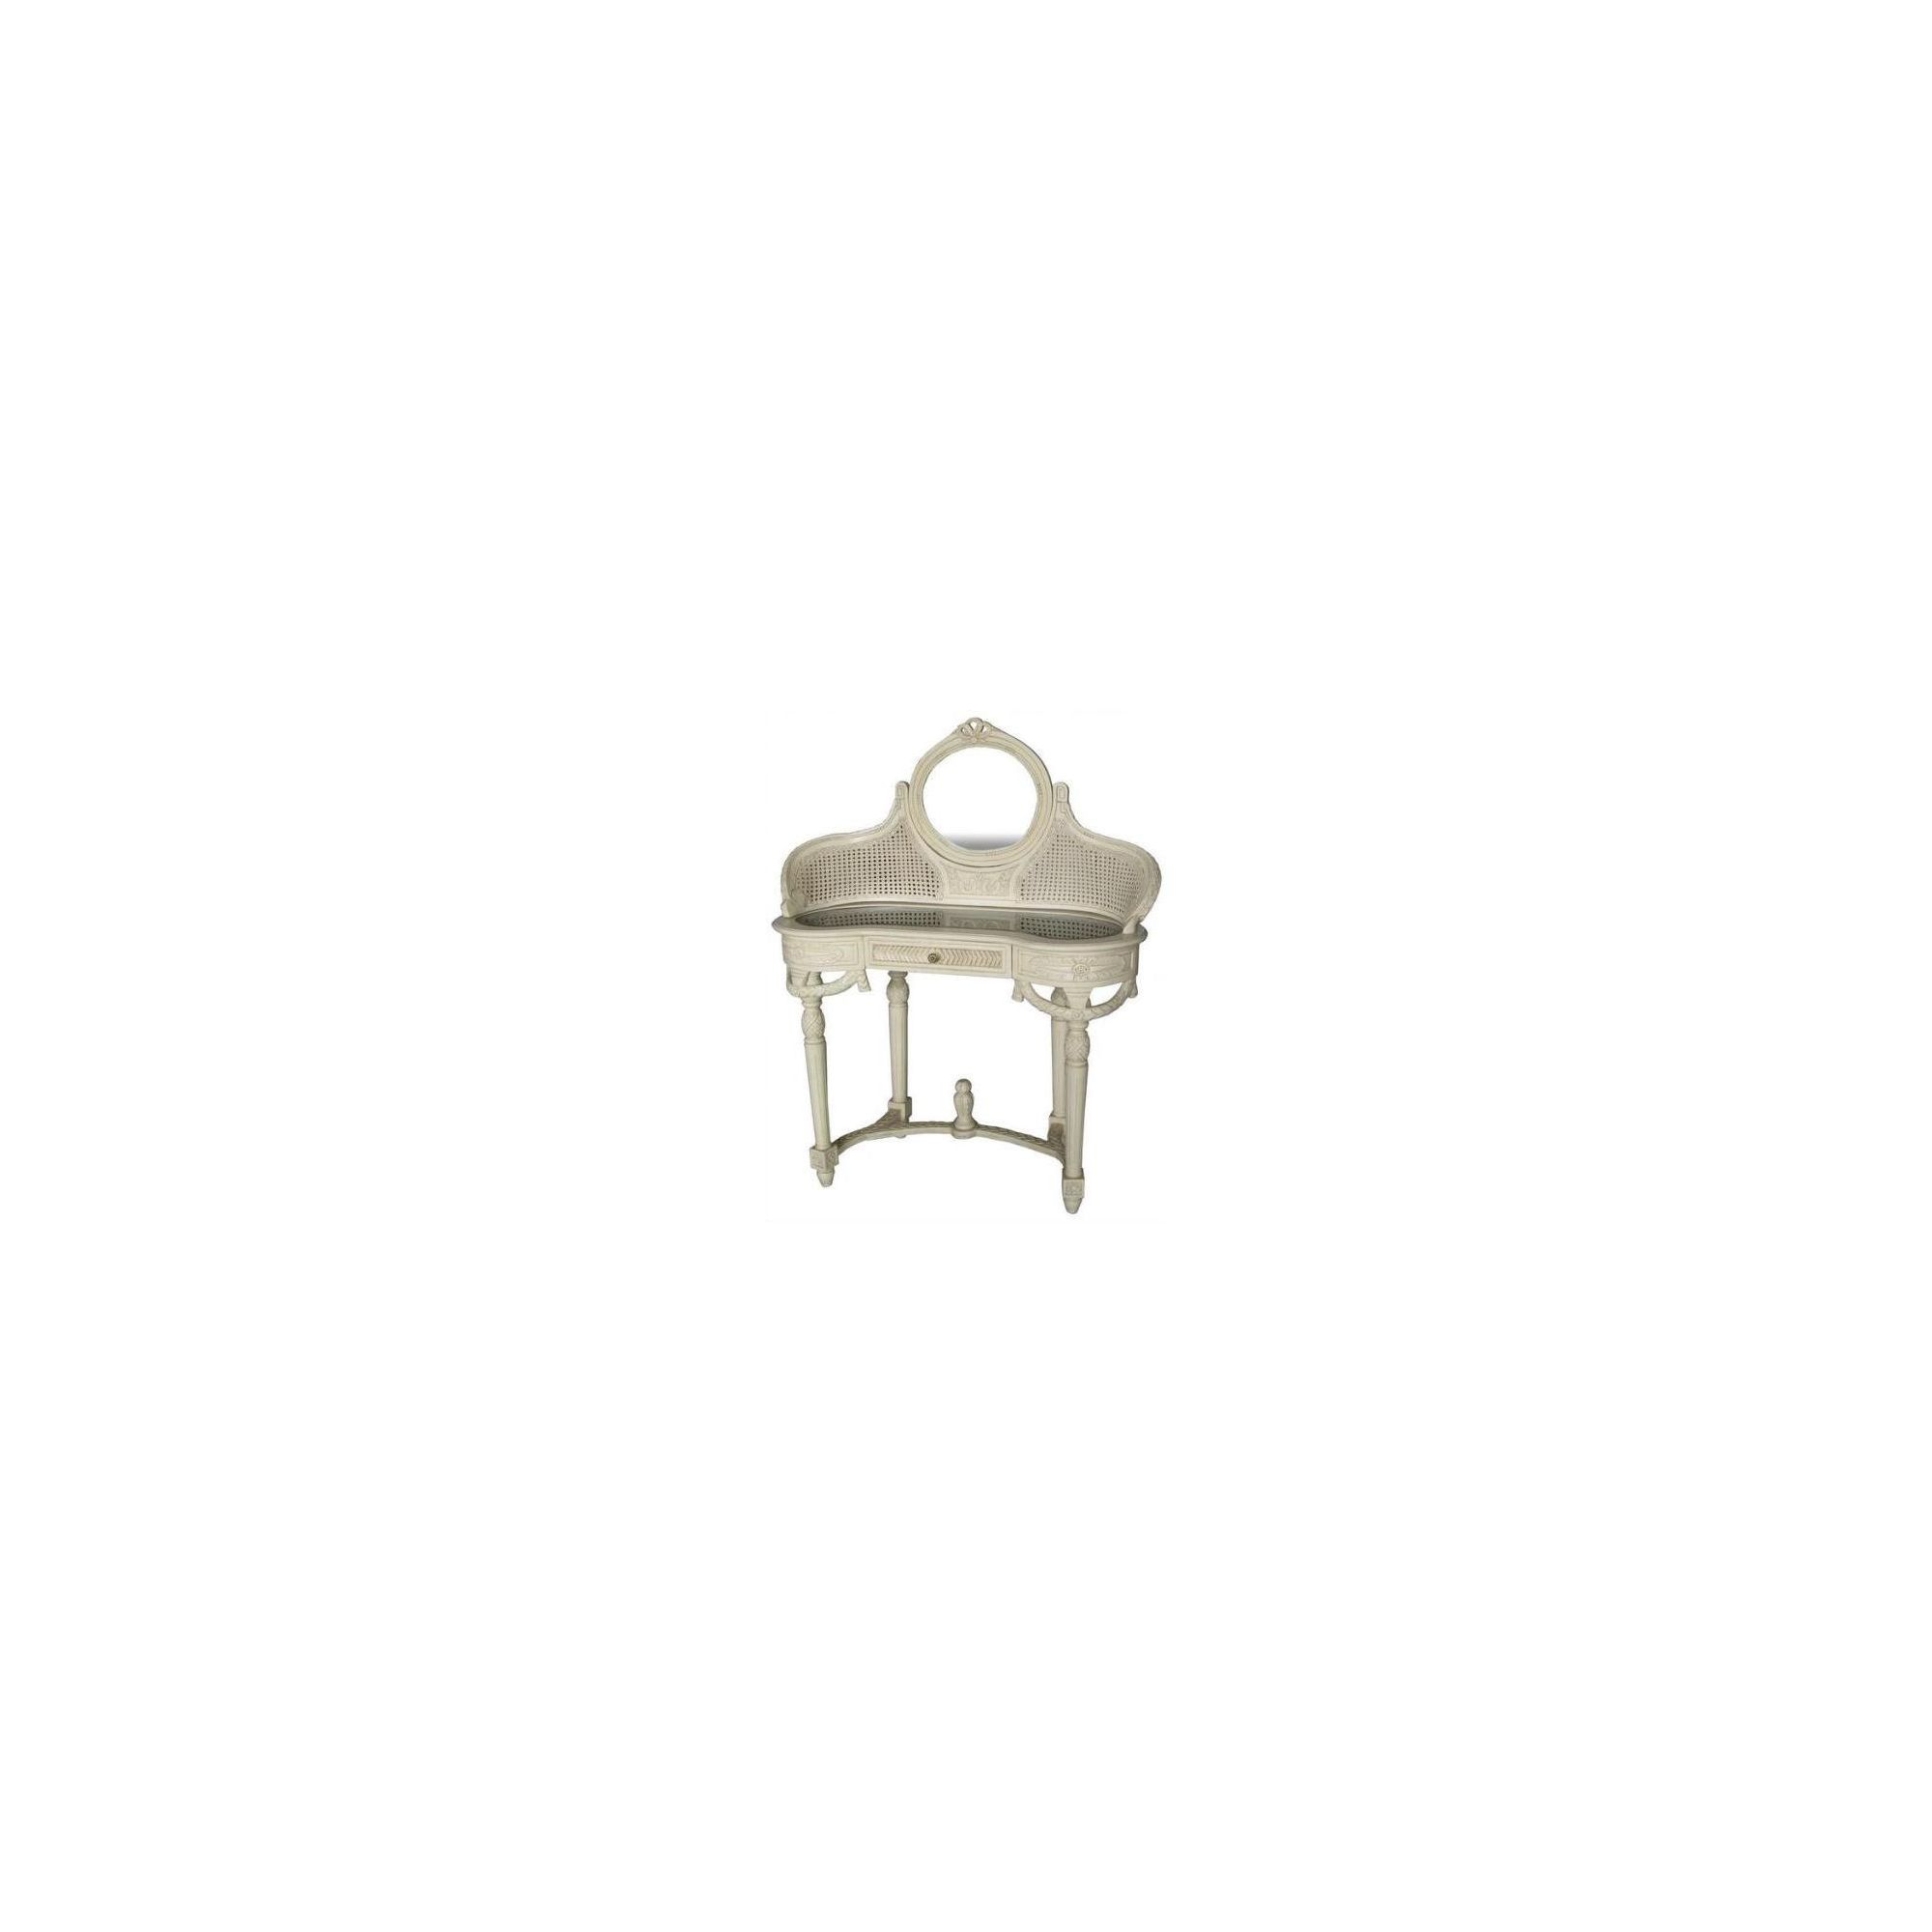 Lock stock and barrel Mahogany Rattan Dressing Table in Mahogany - Antique White at Tesco Direct